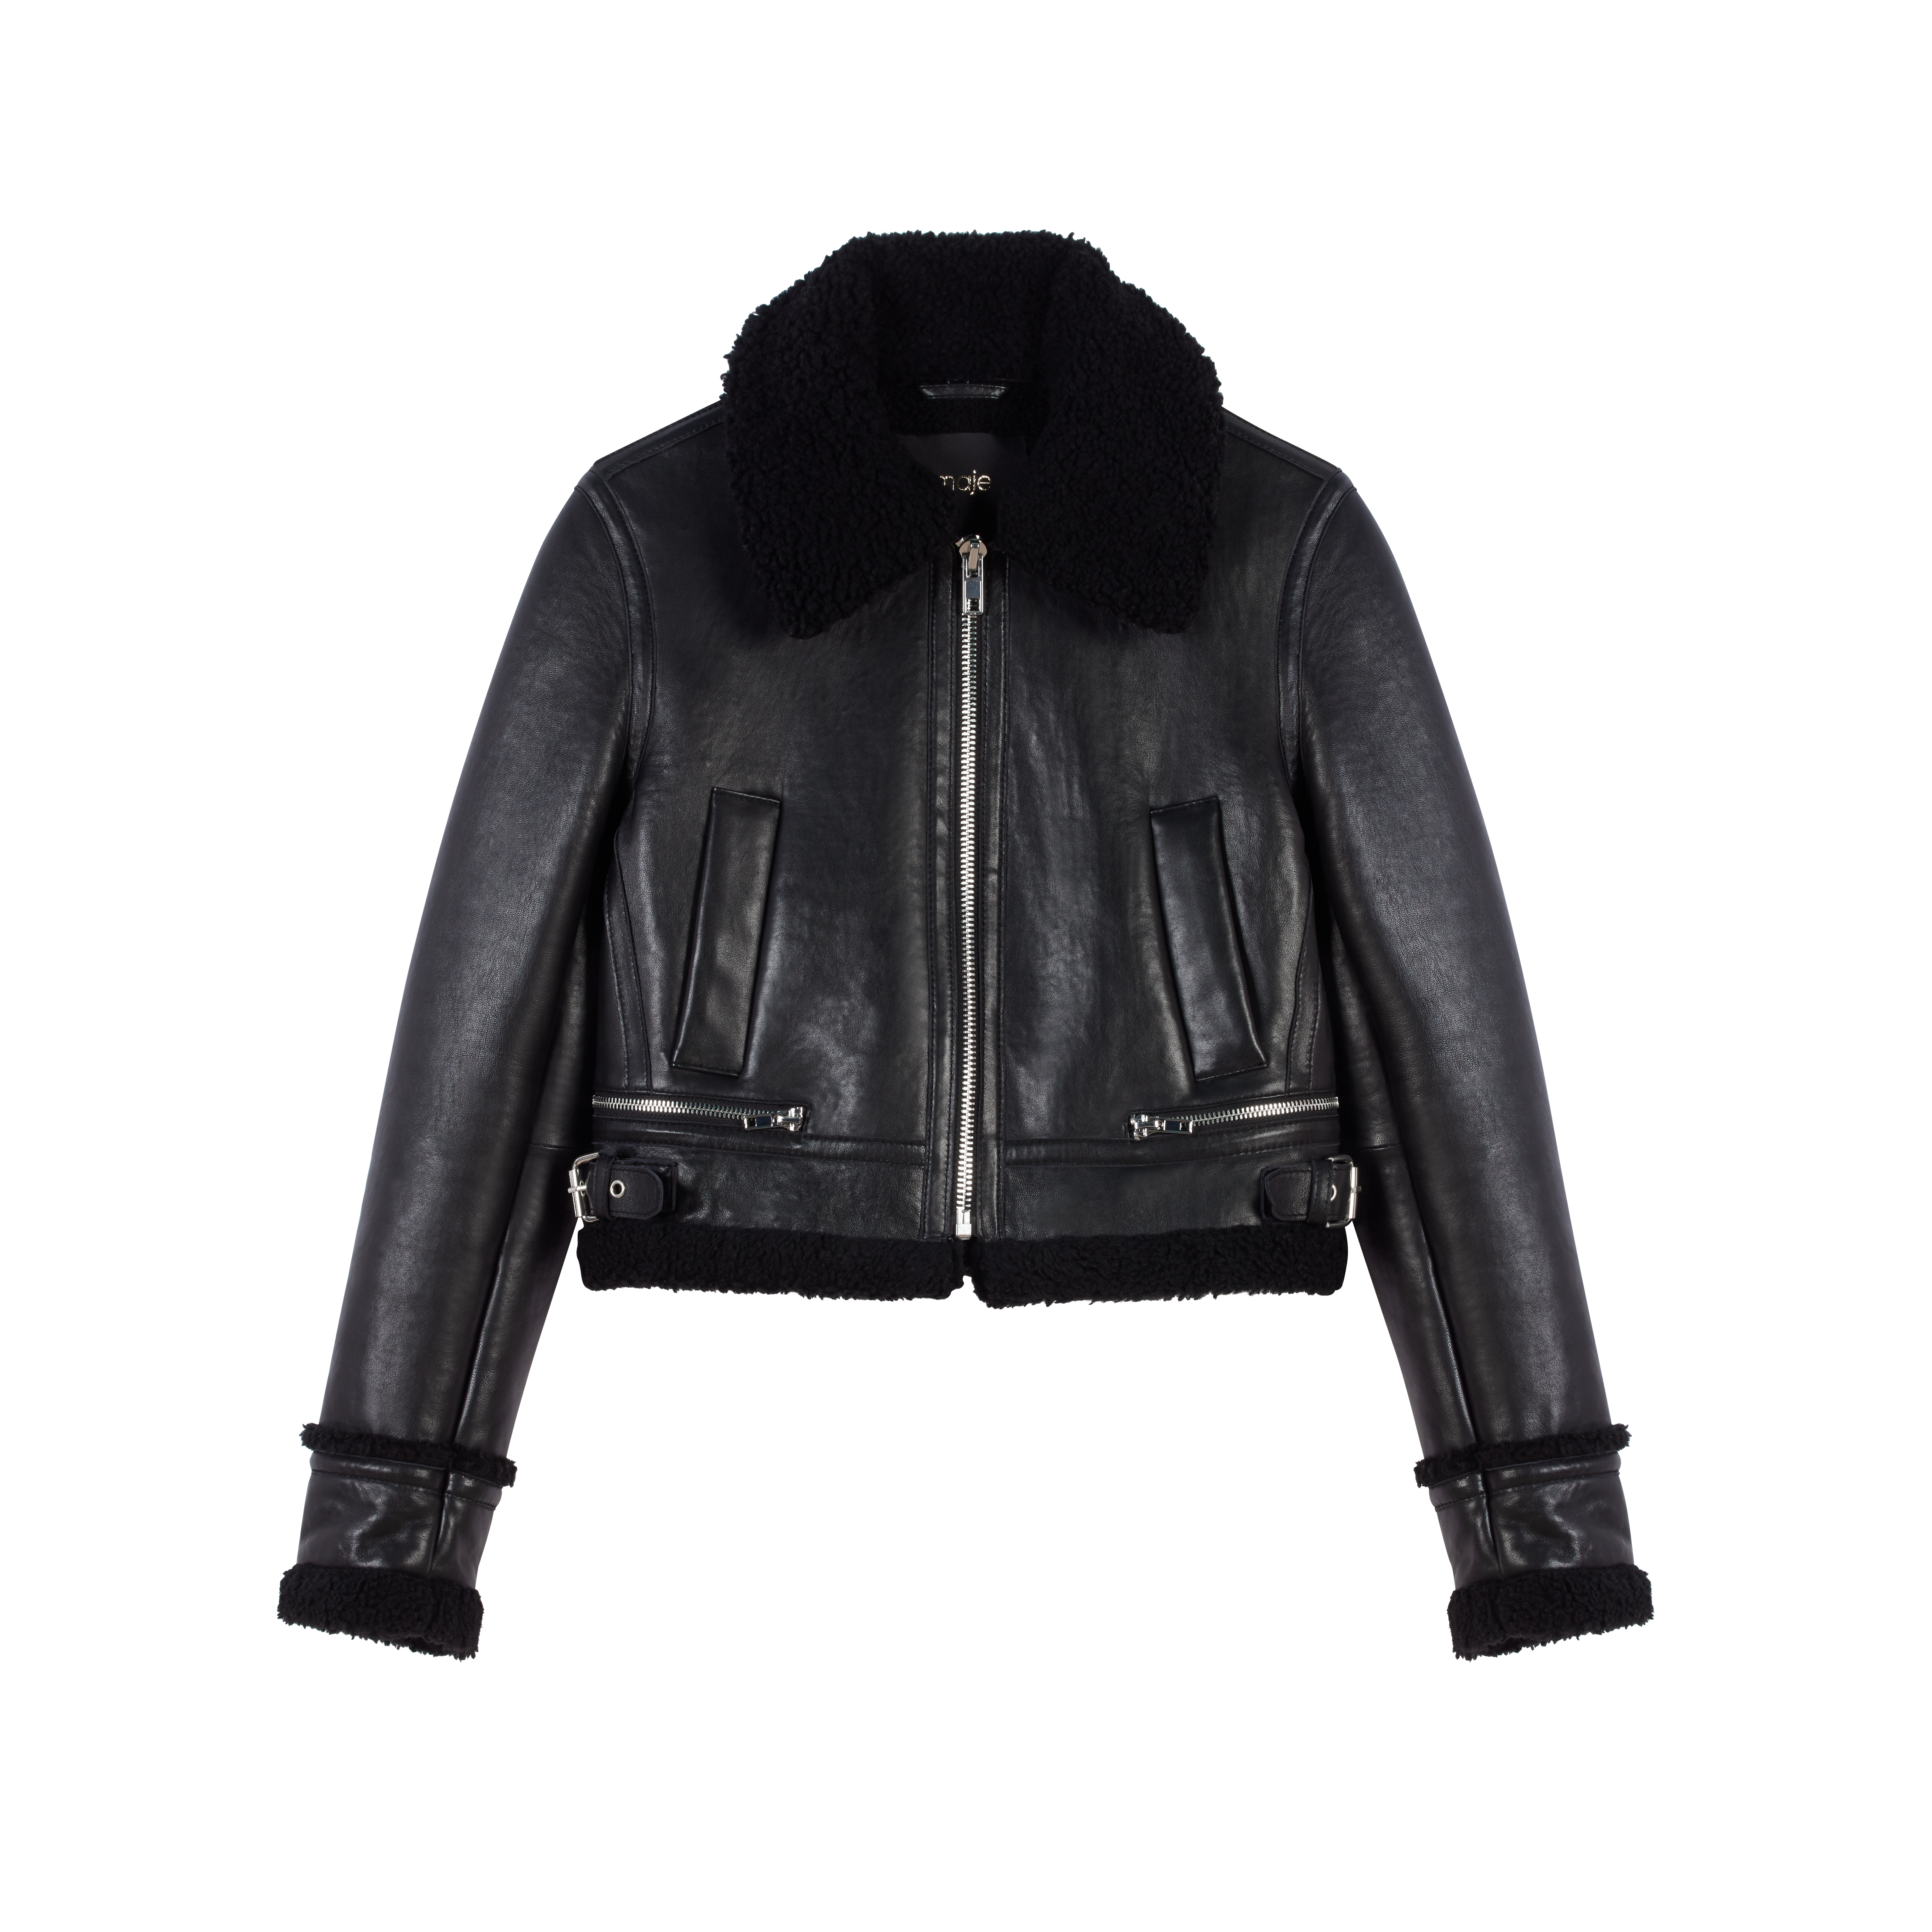 Leather jacket with shearling collar - Coats & Jackets - MAJE